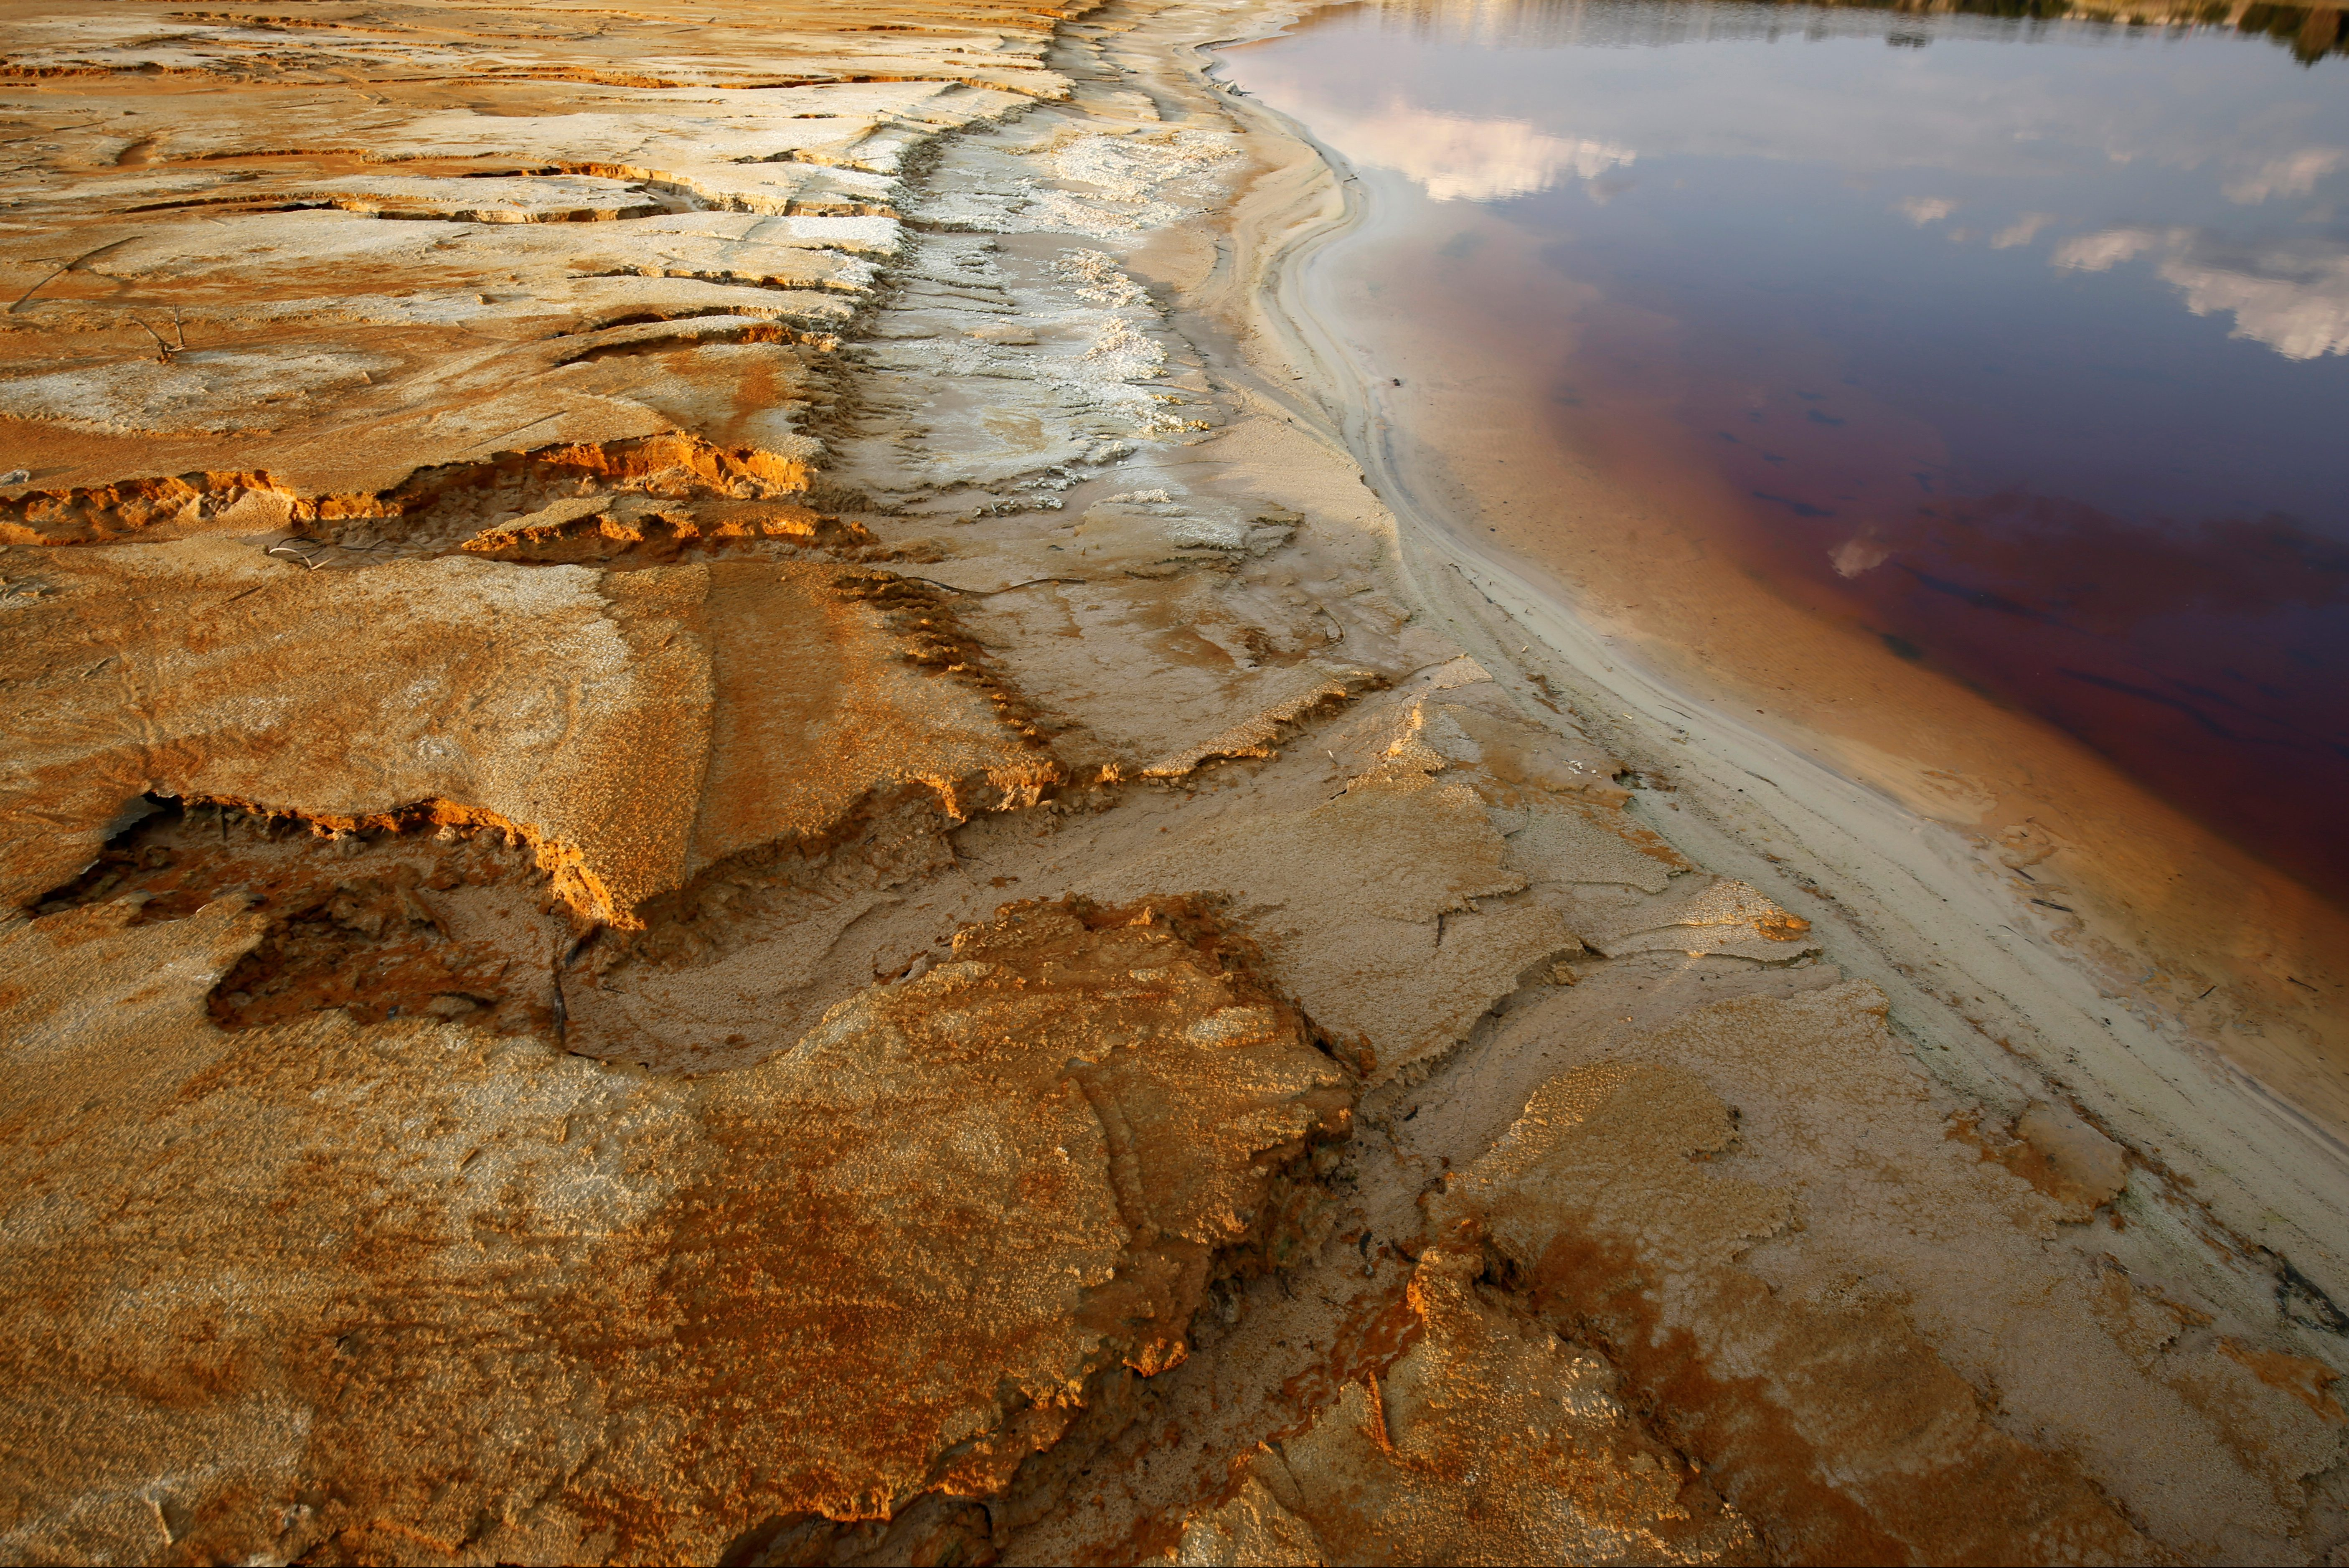 Polluted water emanating from mining operations fills a dam near Johannesburg